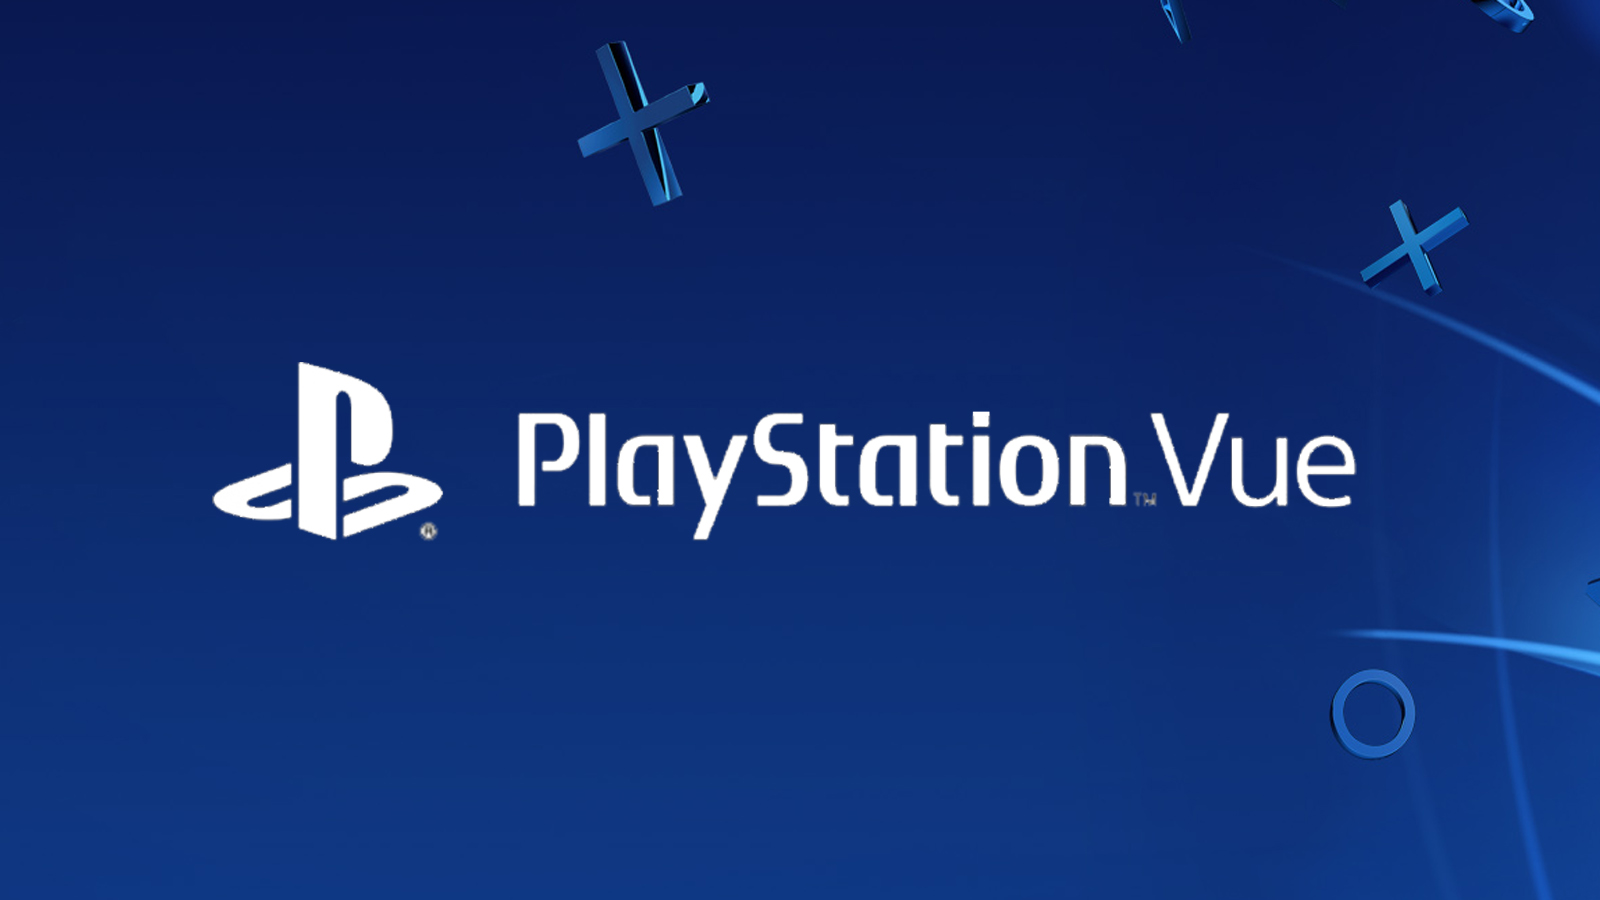 PlayStation Vue is no longer in service